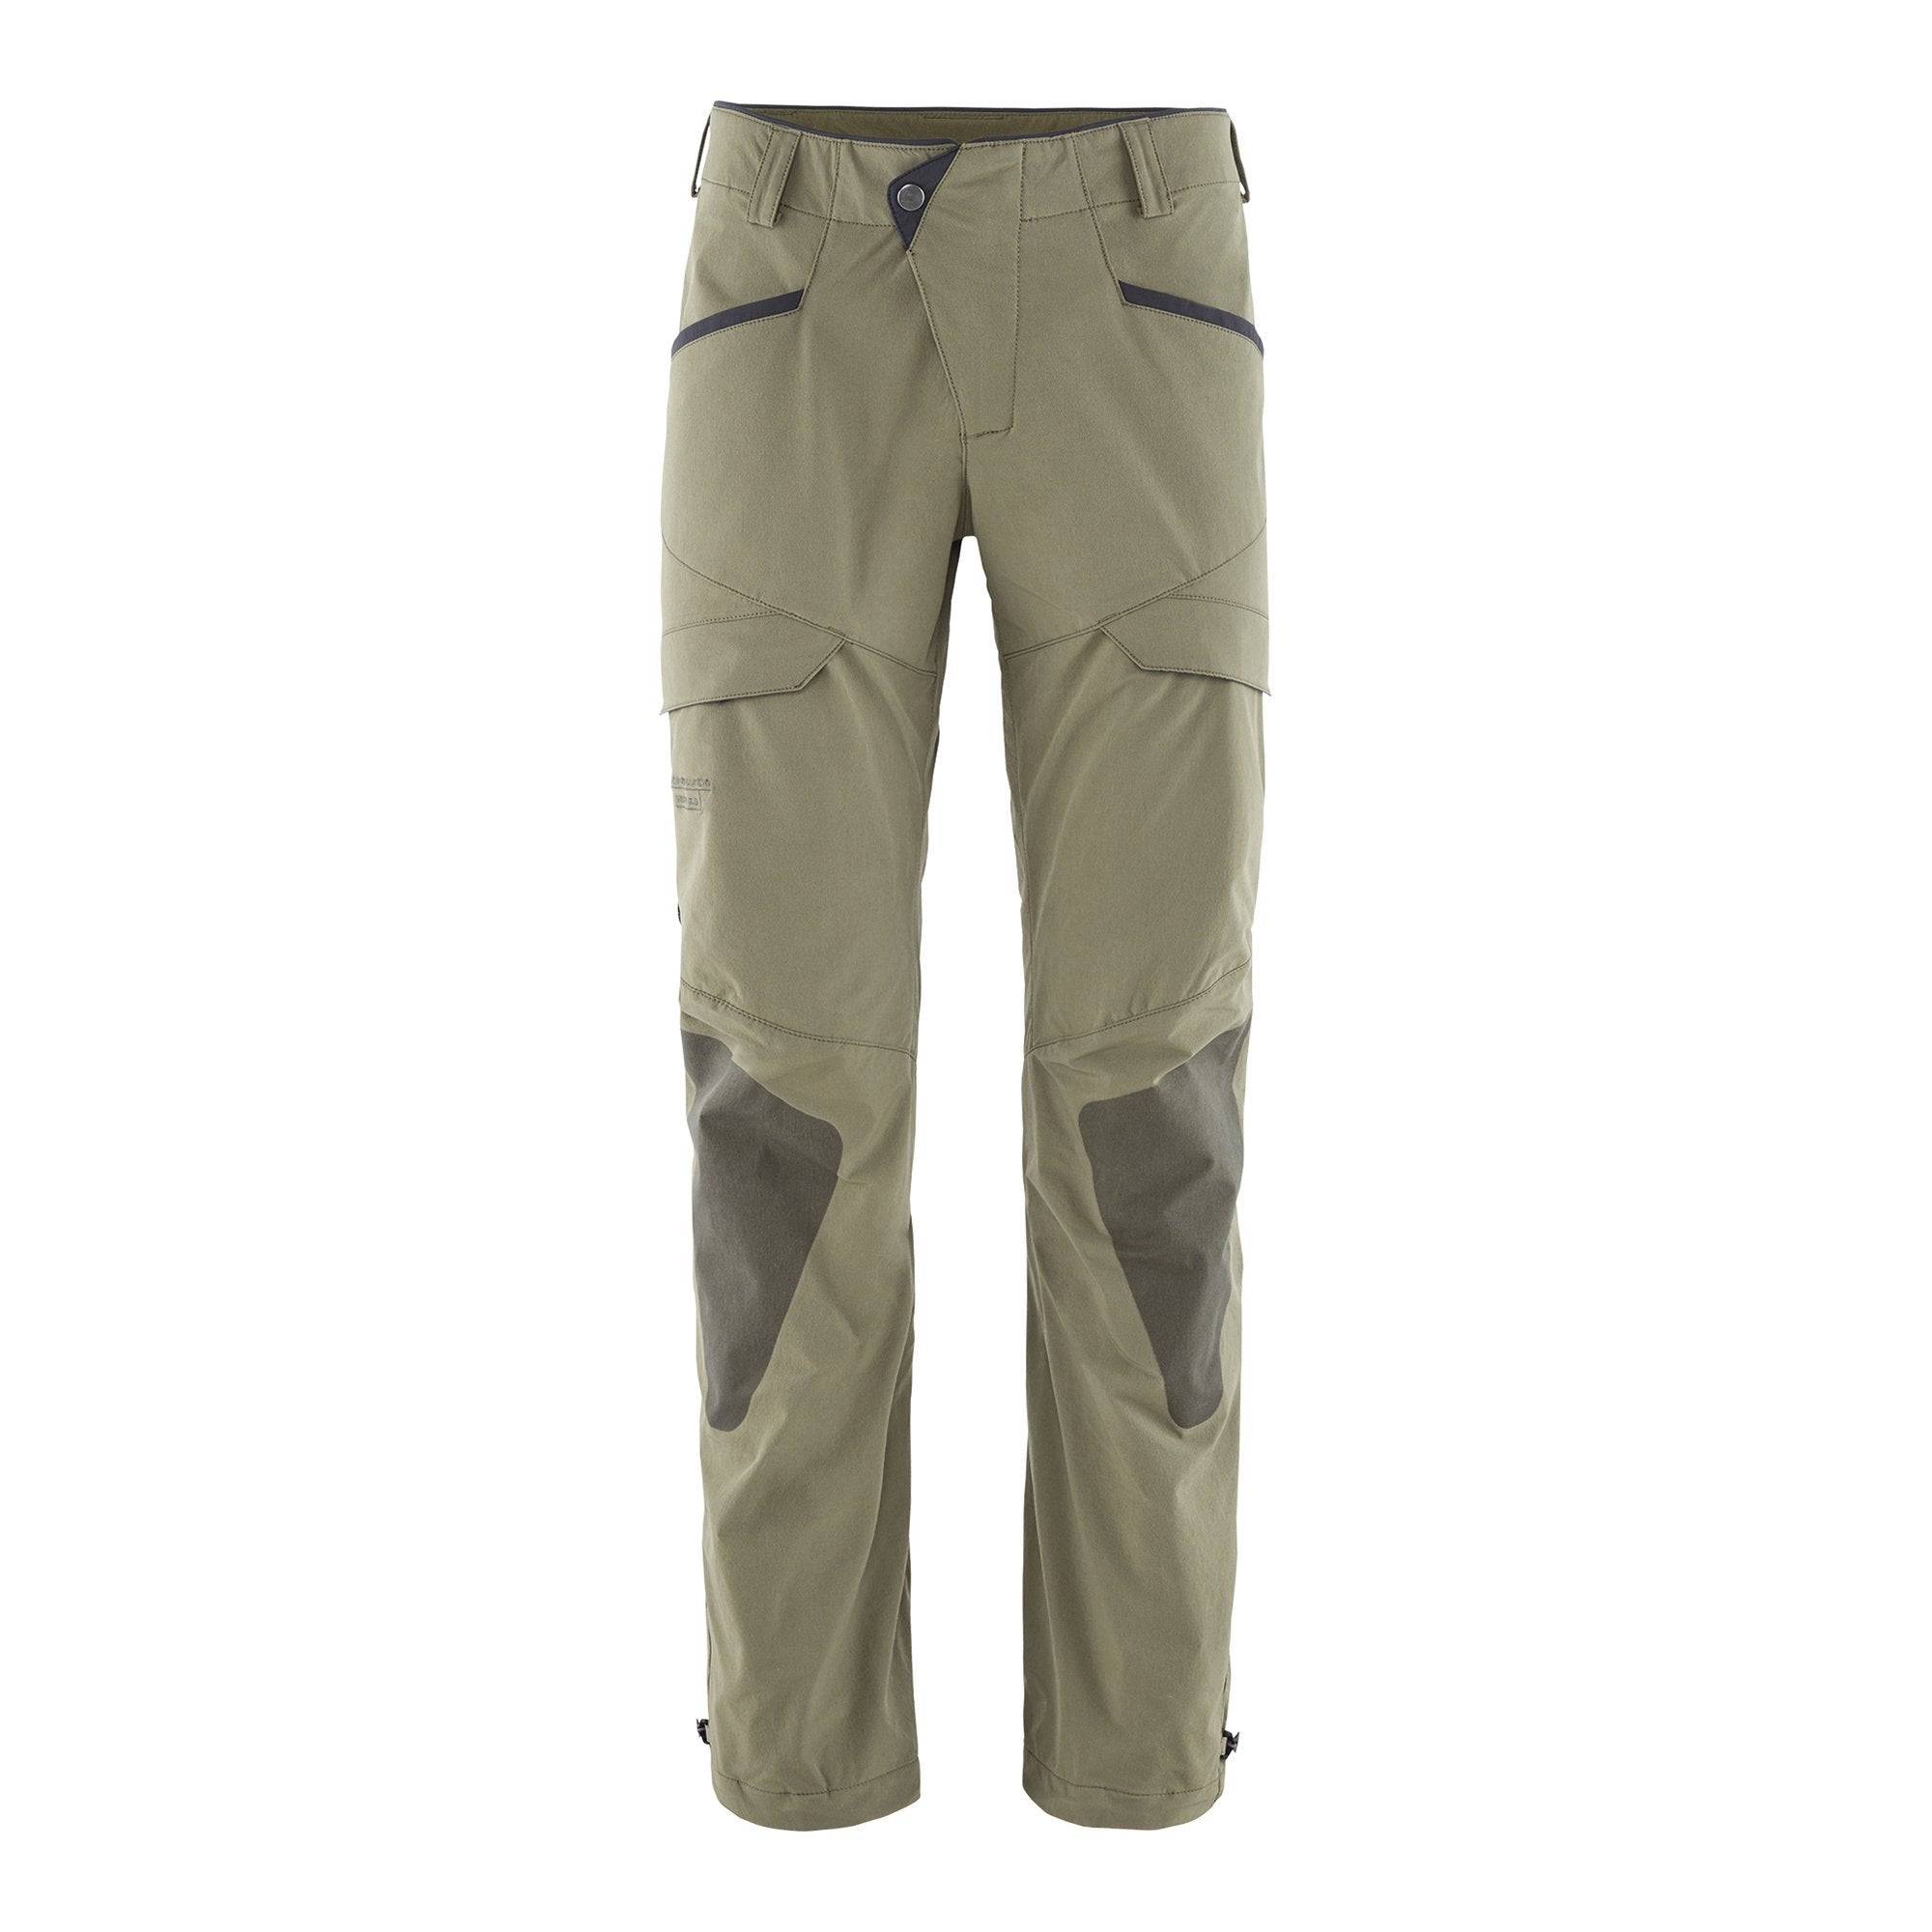 Misty 2.0 Pants - Dusty Green - Herr - Vindpinad